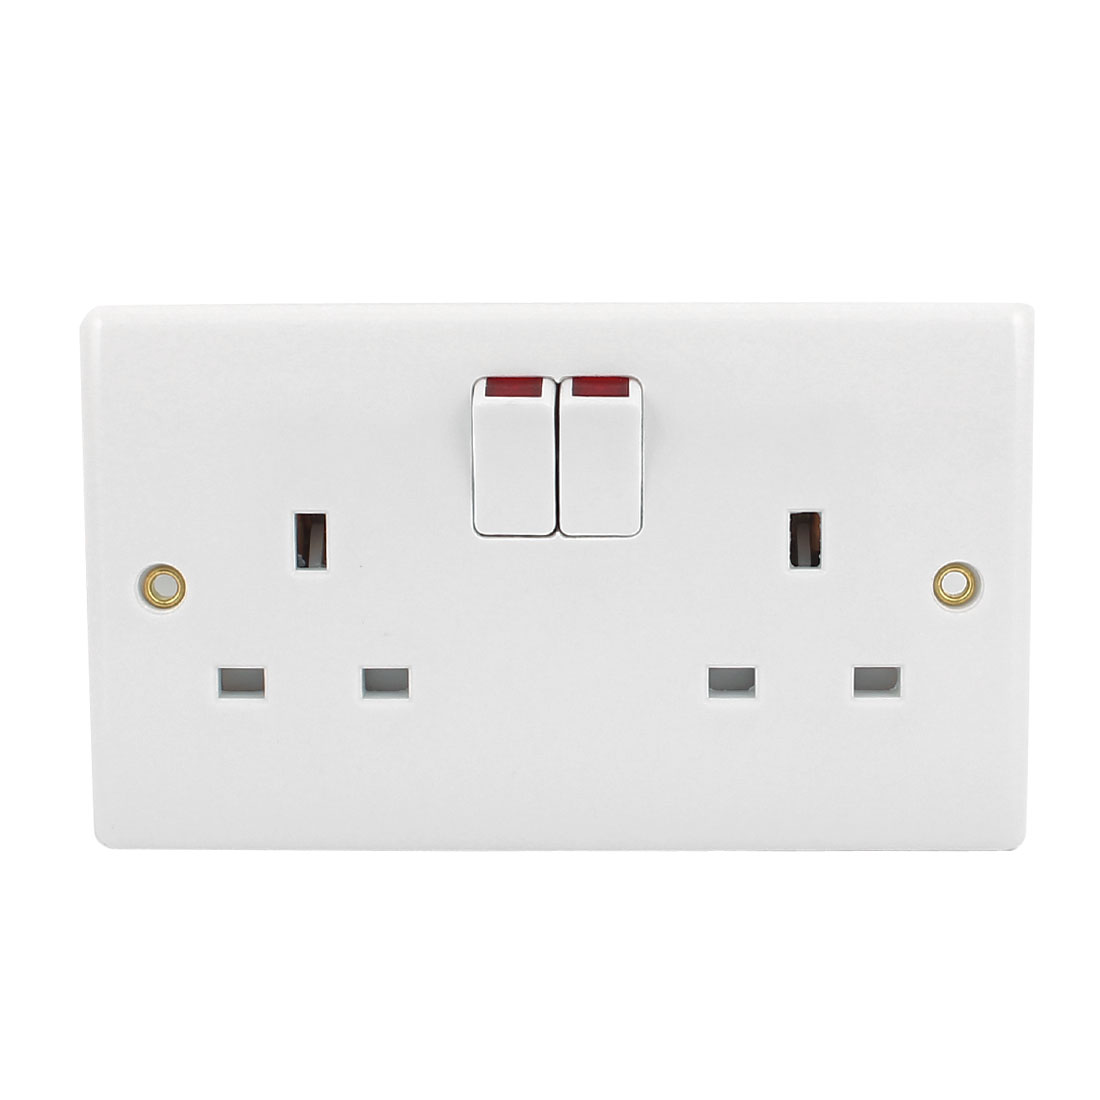 AC 250V UK Socket Dual Mains Power 2 Gang Wall Panel Switches Outlet